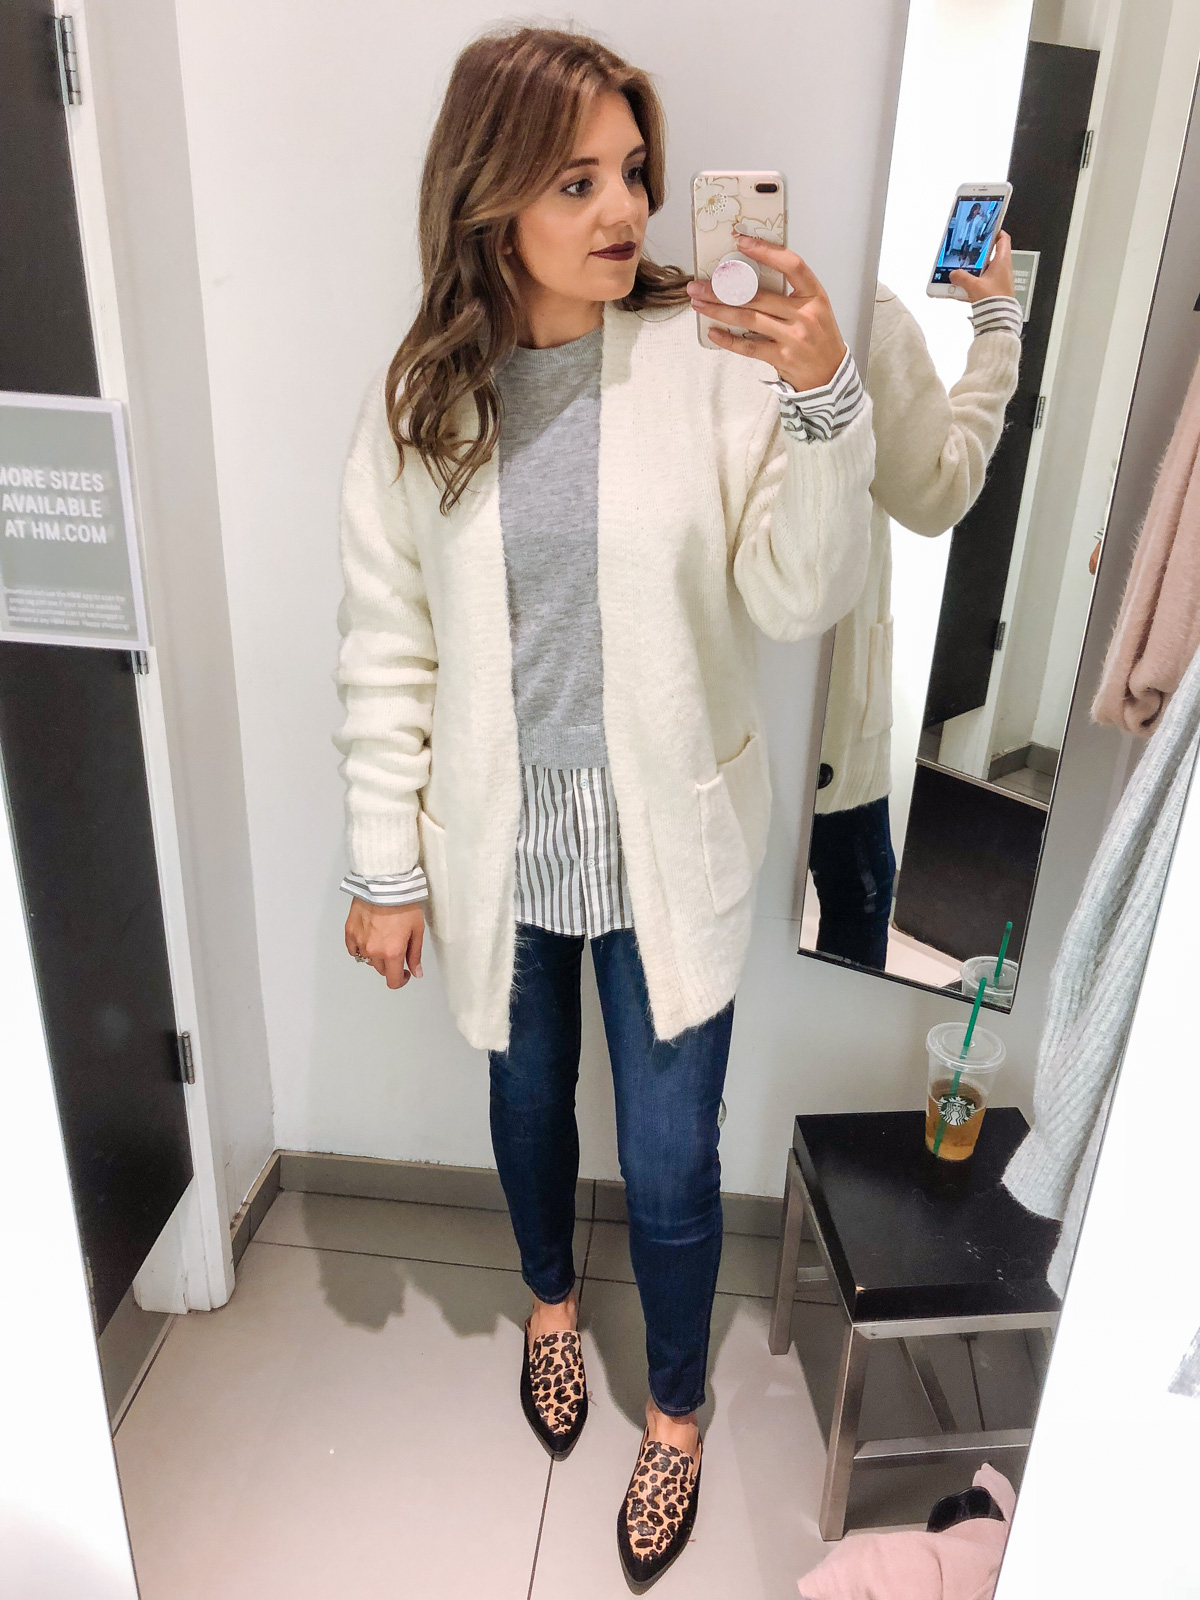 H&M reviews - dressing room try-on session | Huge fall try-on session! See my picks from Nordstrom, Shopbop, Loft, and H&M! bylaurenm.com